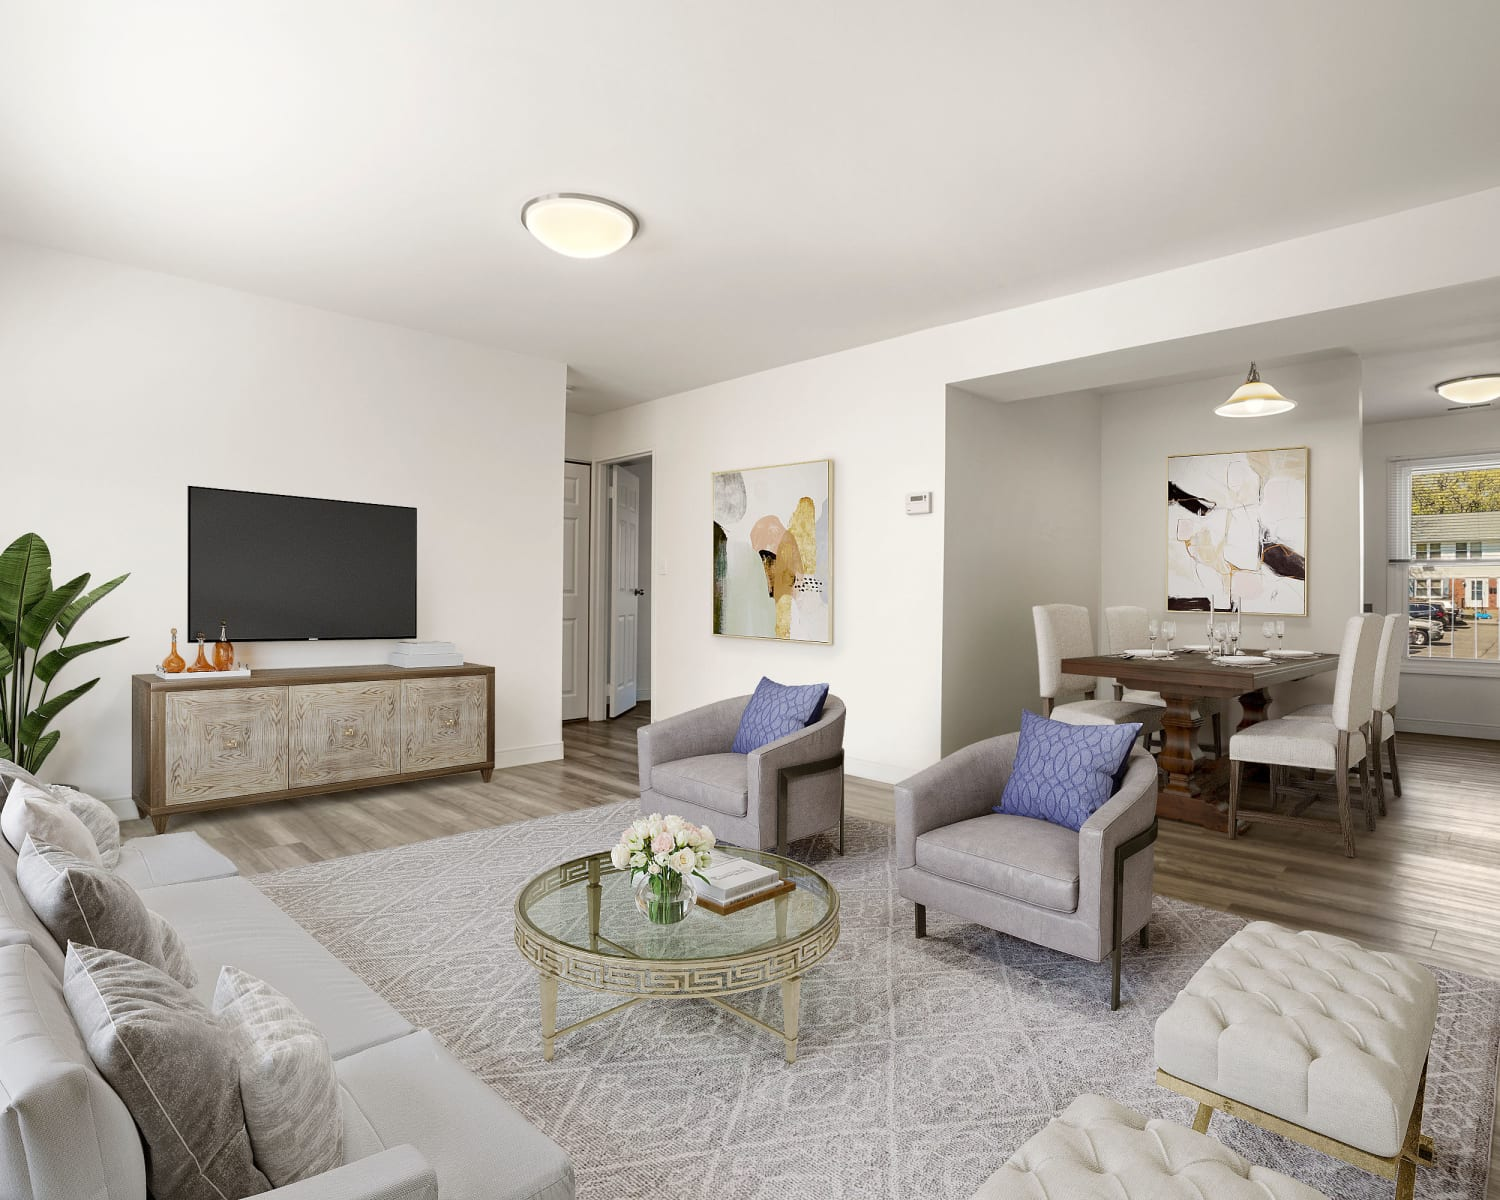 Spacious living room in model home at Stony Brook Commons in Roslindale, Massachusetts